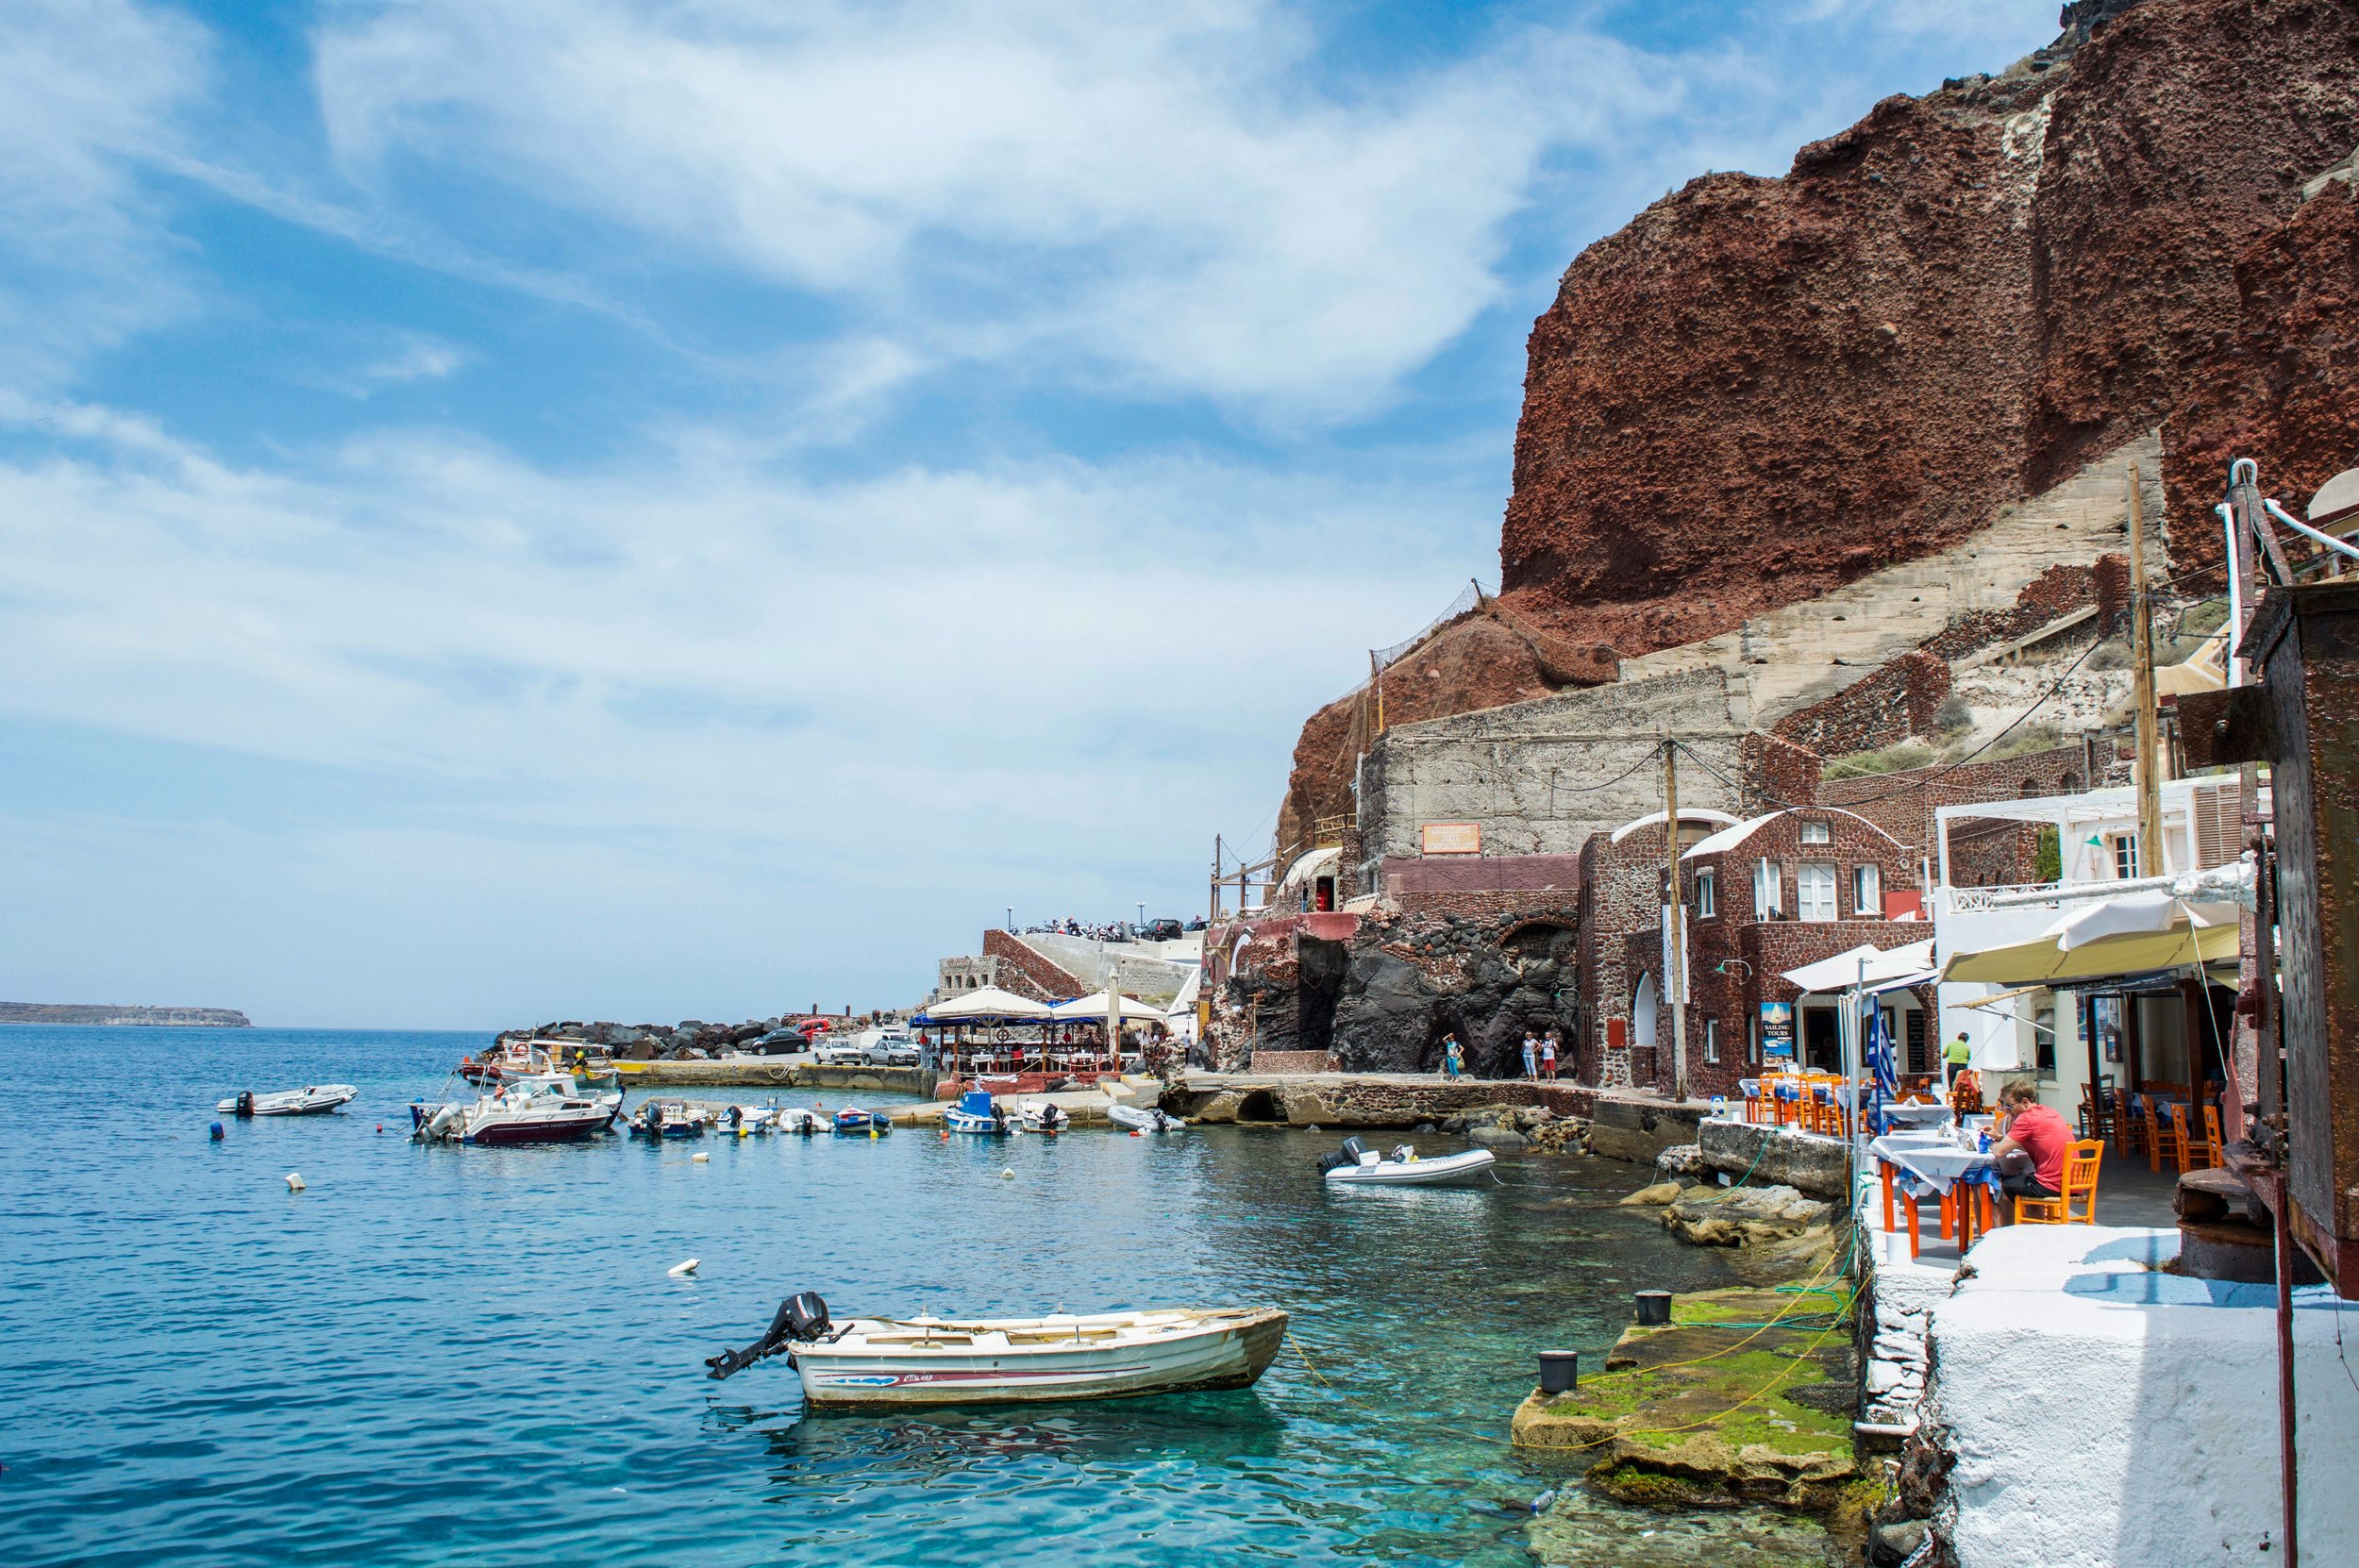 Rent a vehicle to visit Santorini's best spots. From the fishing port of Ammoudi Bay to the lighthouse of Akrotiri, move at your own pace and make the most of our island's offerings